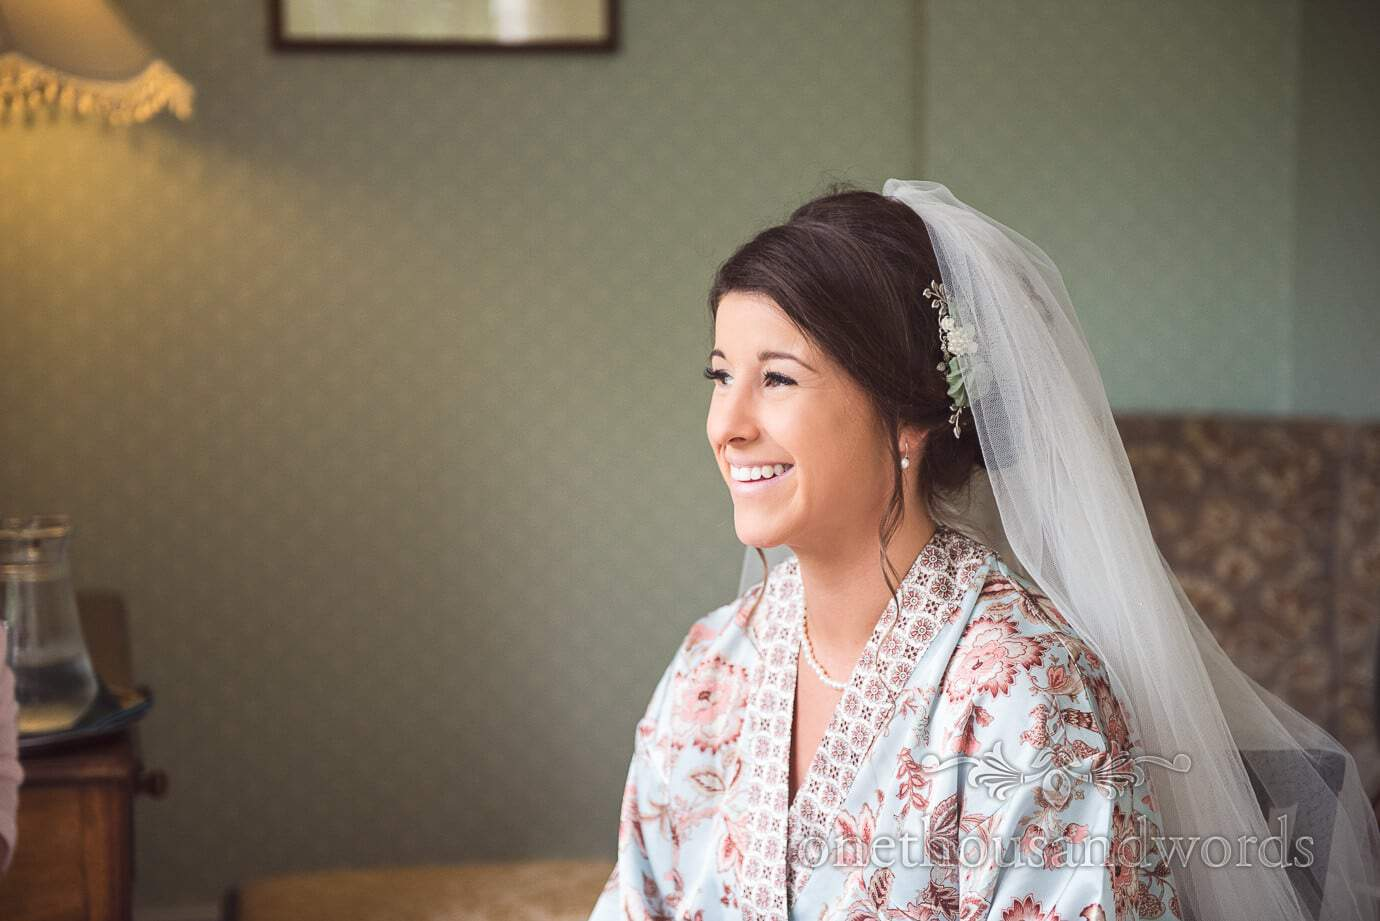 Beautiful bride in silk dressing gown and veil during wedding morning preparations